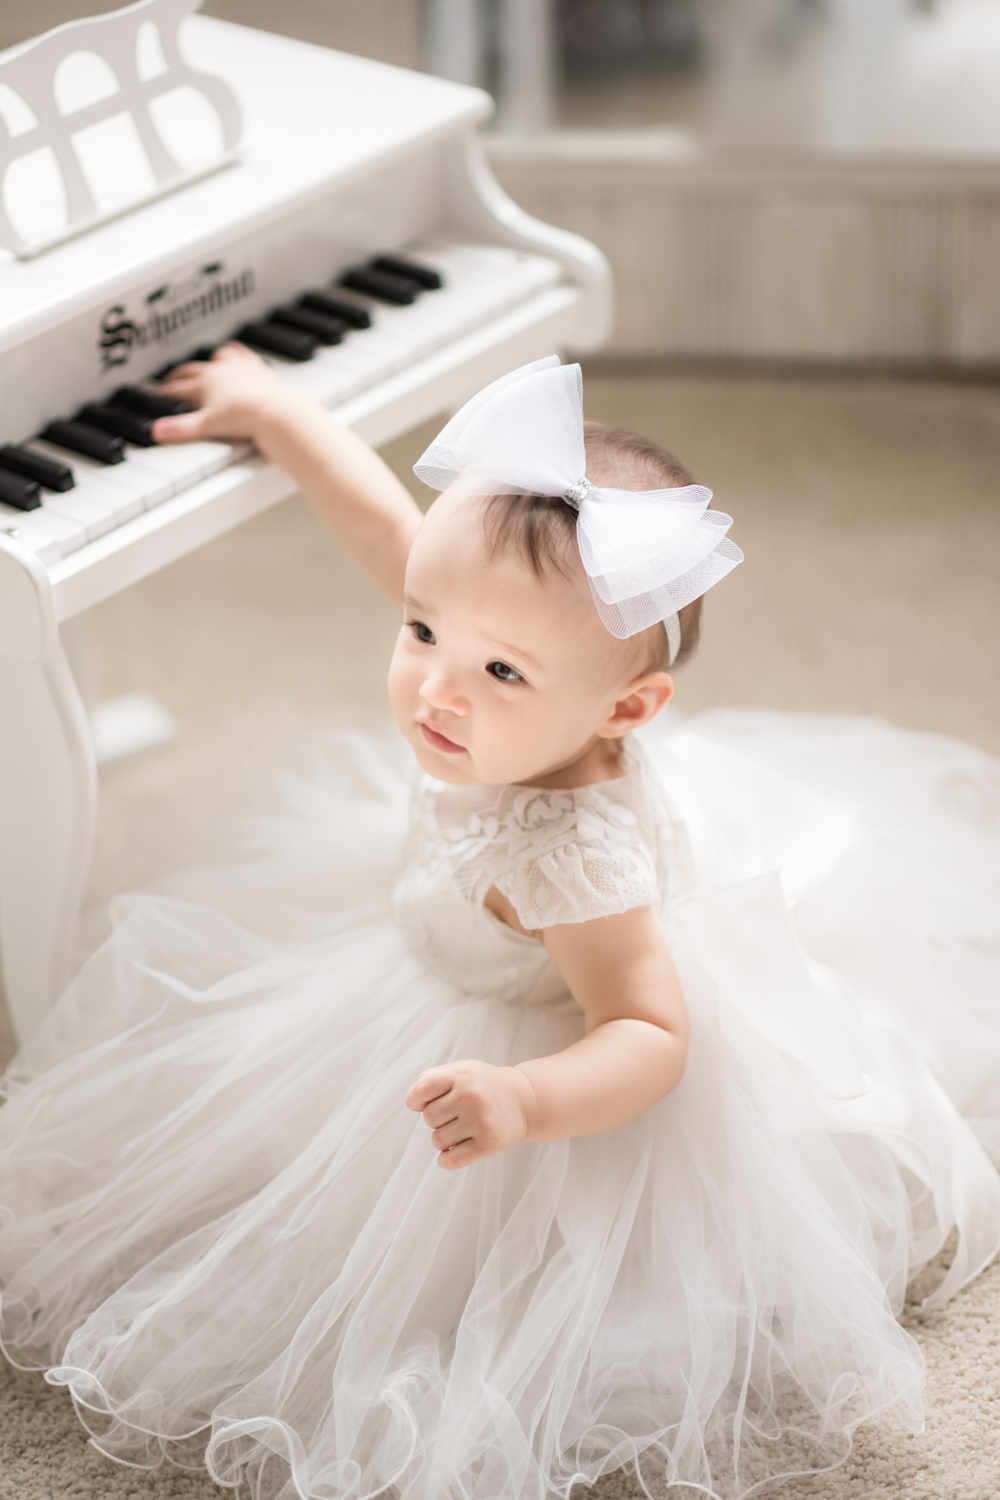 Baby girl plays miniature piano during birthday photo session in Chicago.